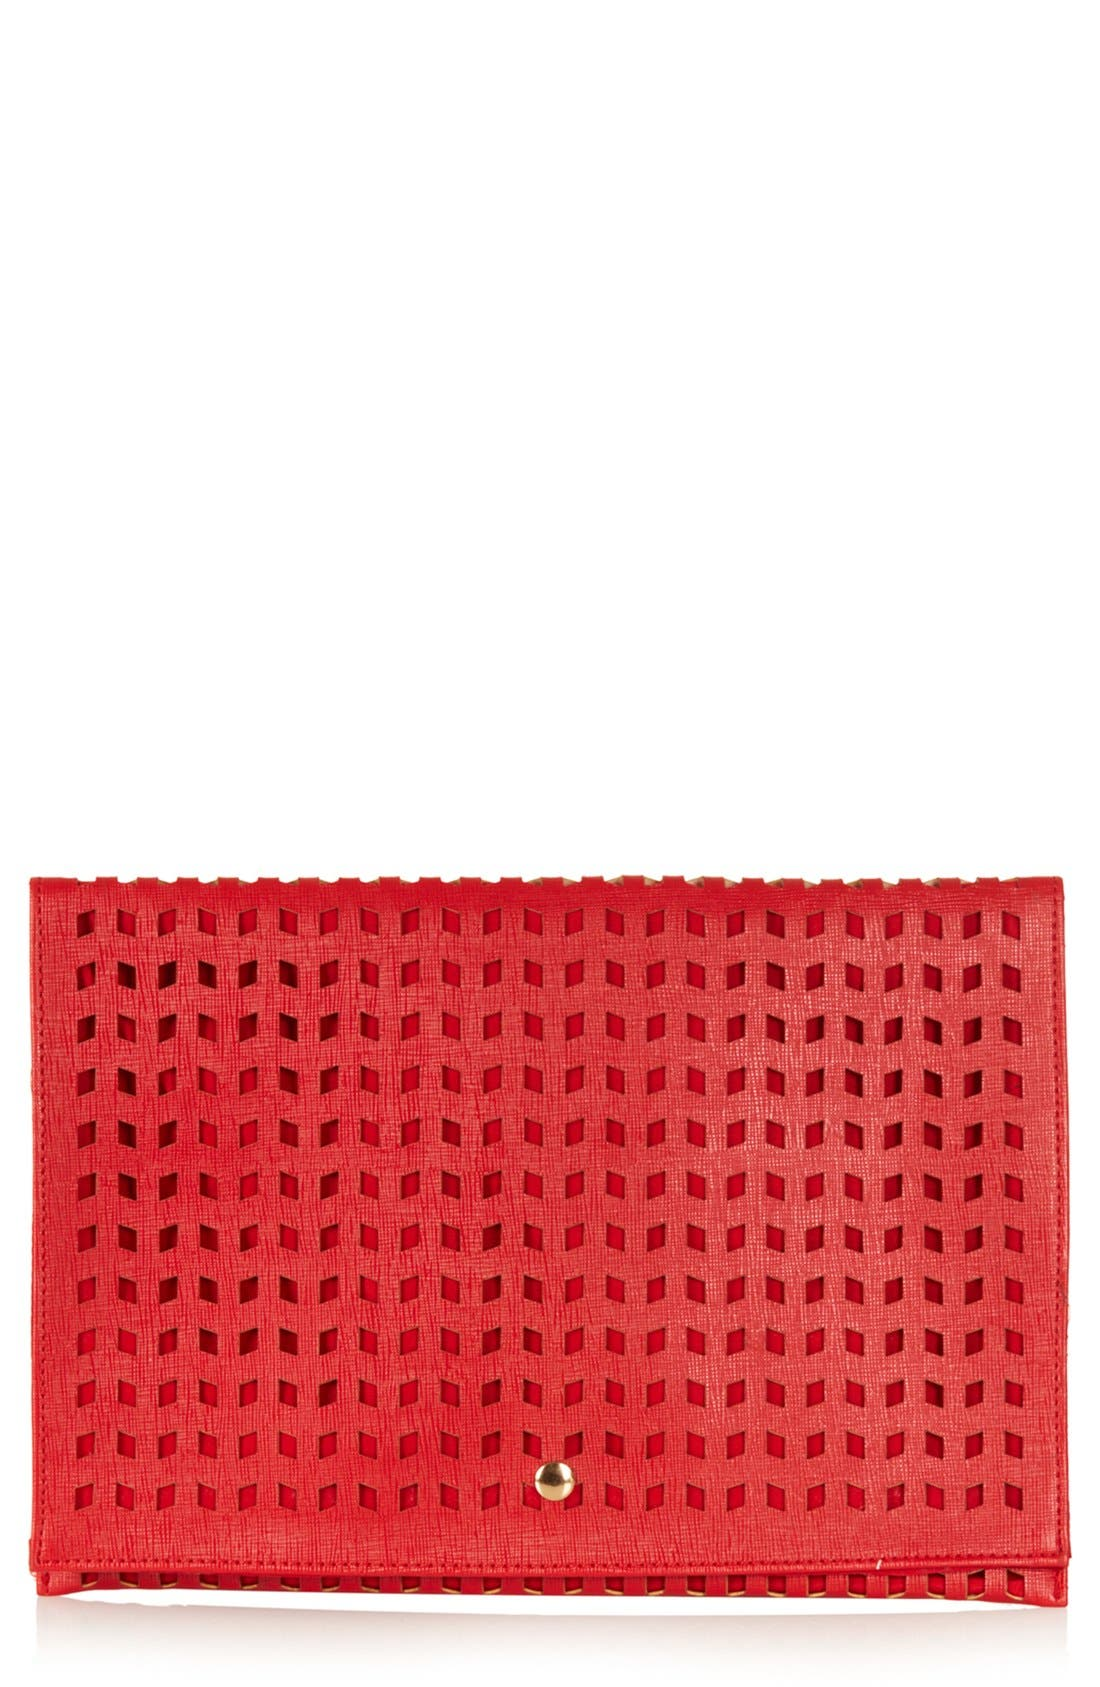 Main Image - Topshop Perforated Foldover Clutch